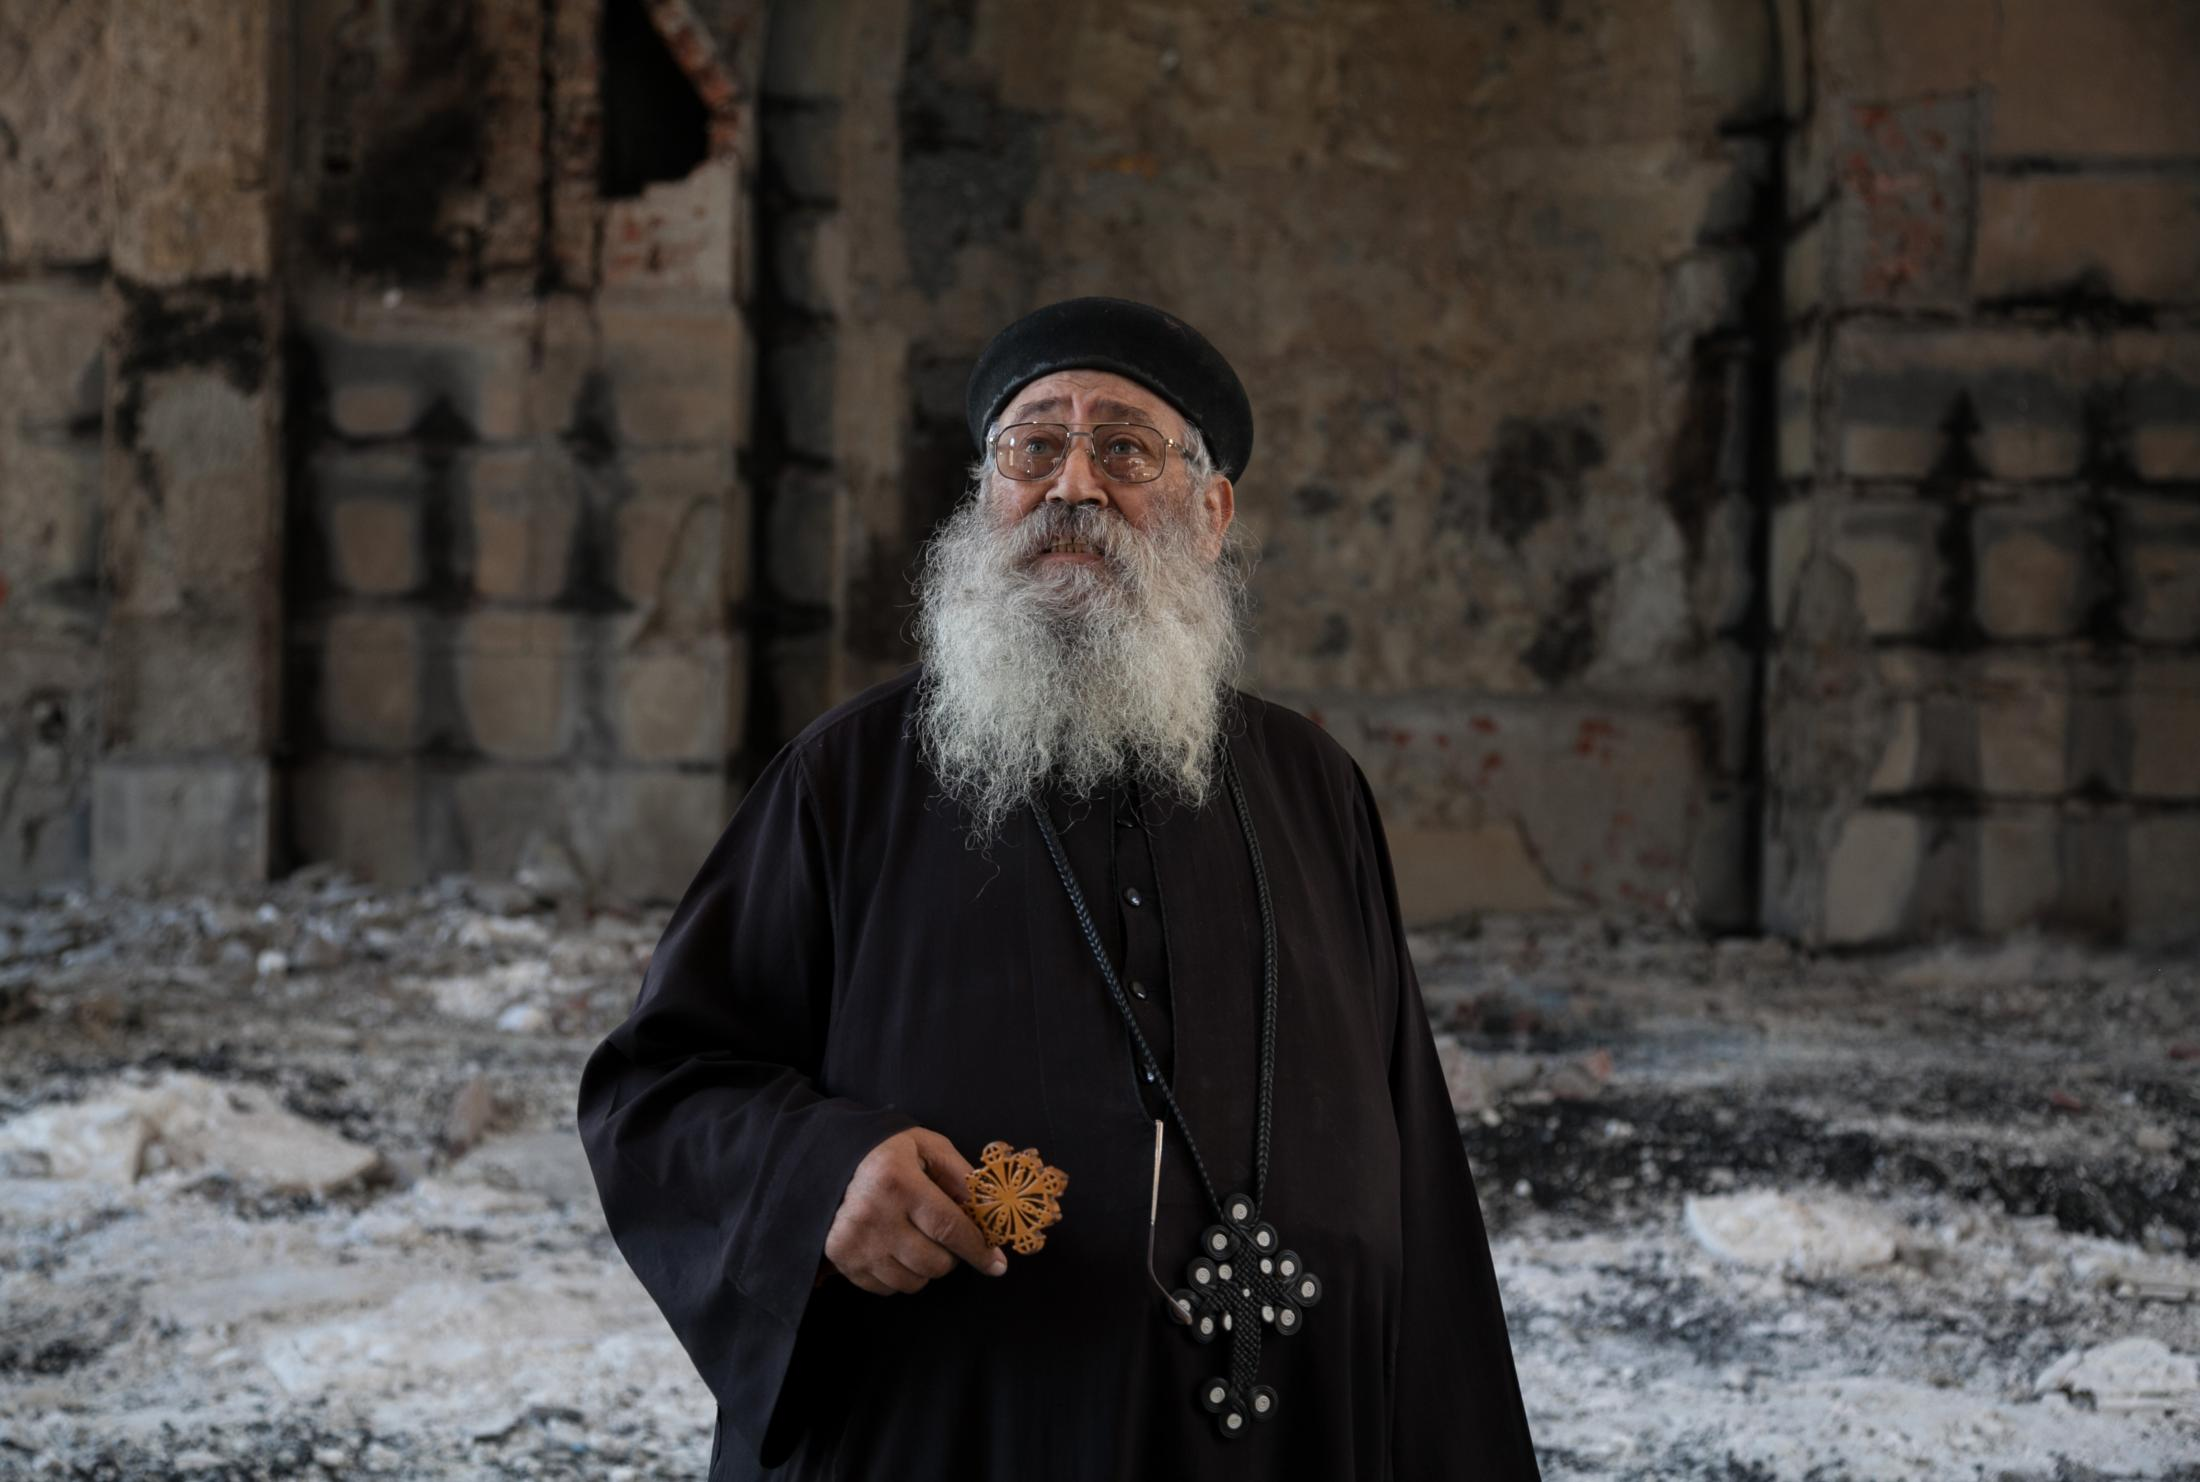 Al-Anba Mousa church in Minya was attacked by groups of men on August 14, 2013, who were pro-Morsi supporters. Father Samuel Aziz Abdou's home which is next to the church came under attack the same day. His home was set fire leaving him and his family with no home.